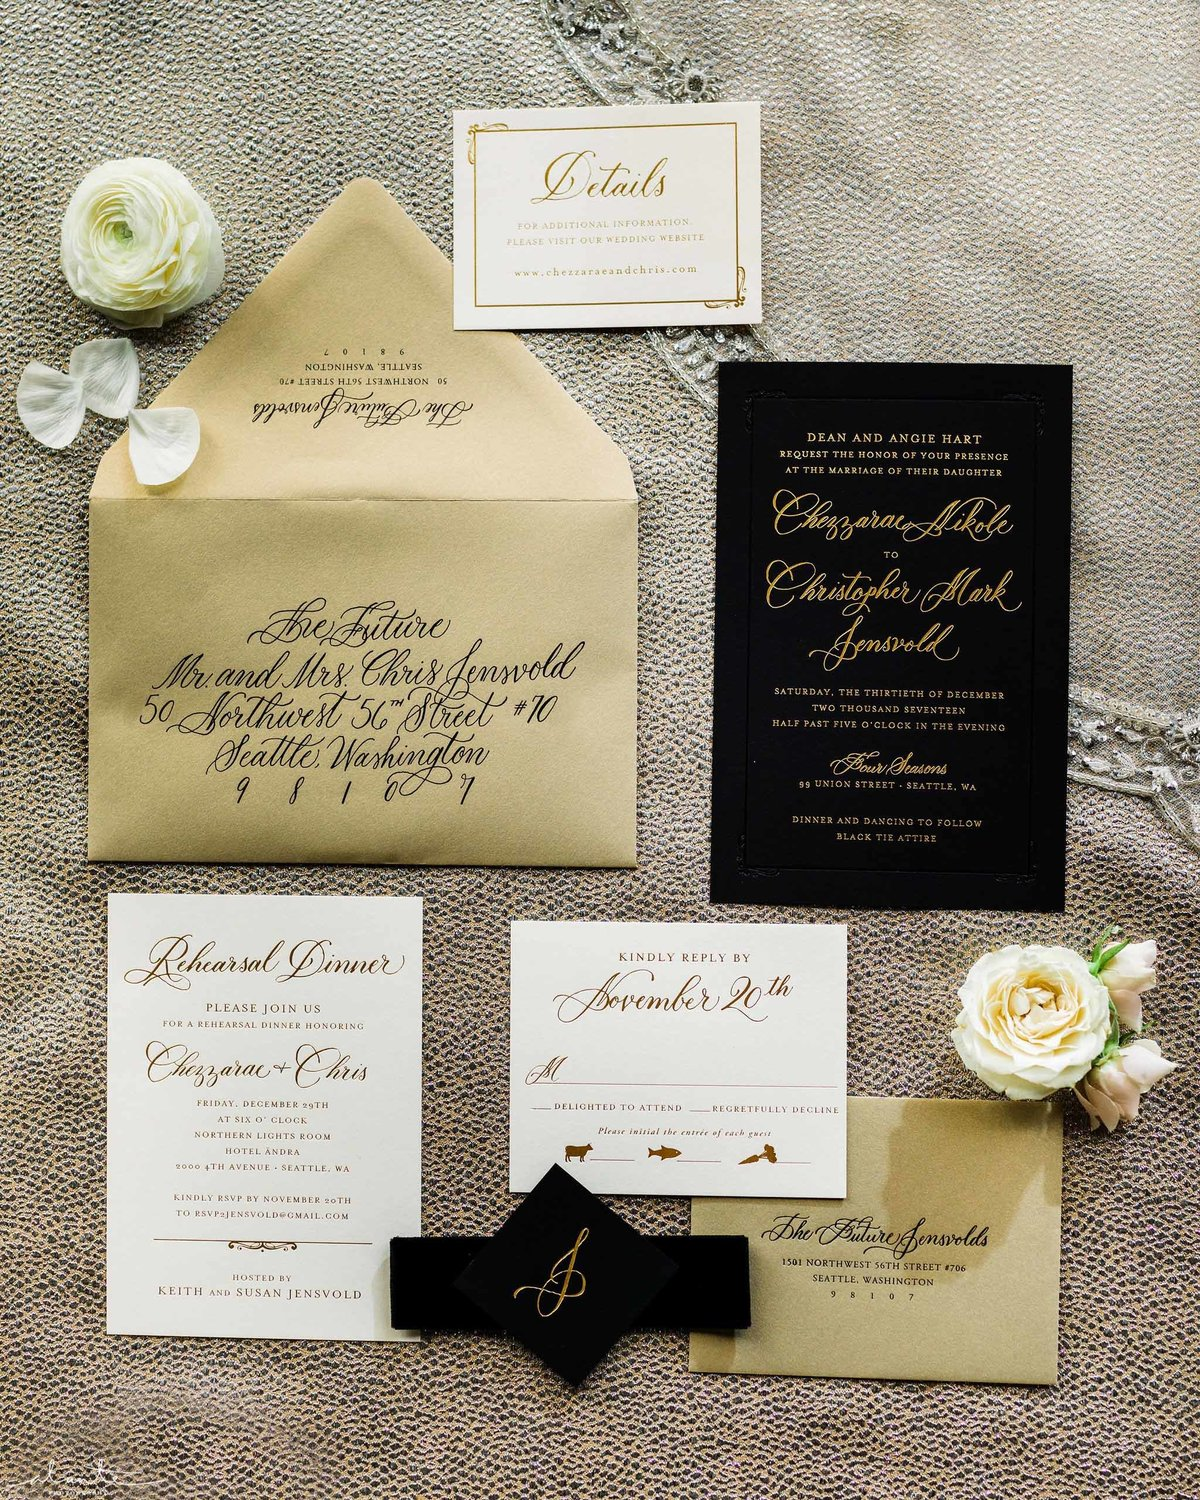 124Seattle-luxury-wedding-Flora-Nova-Design